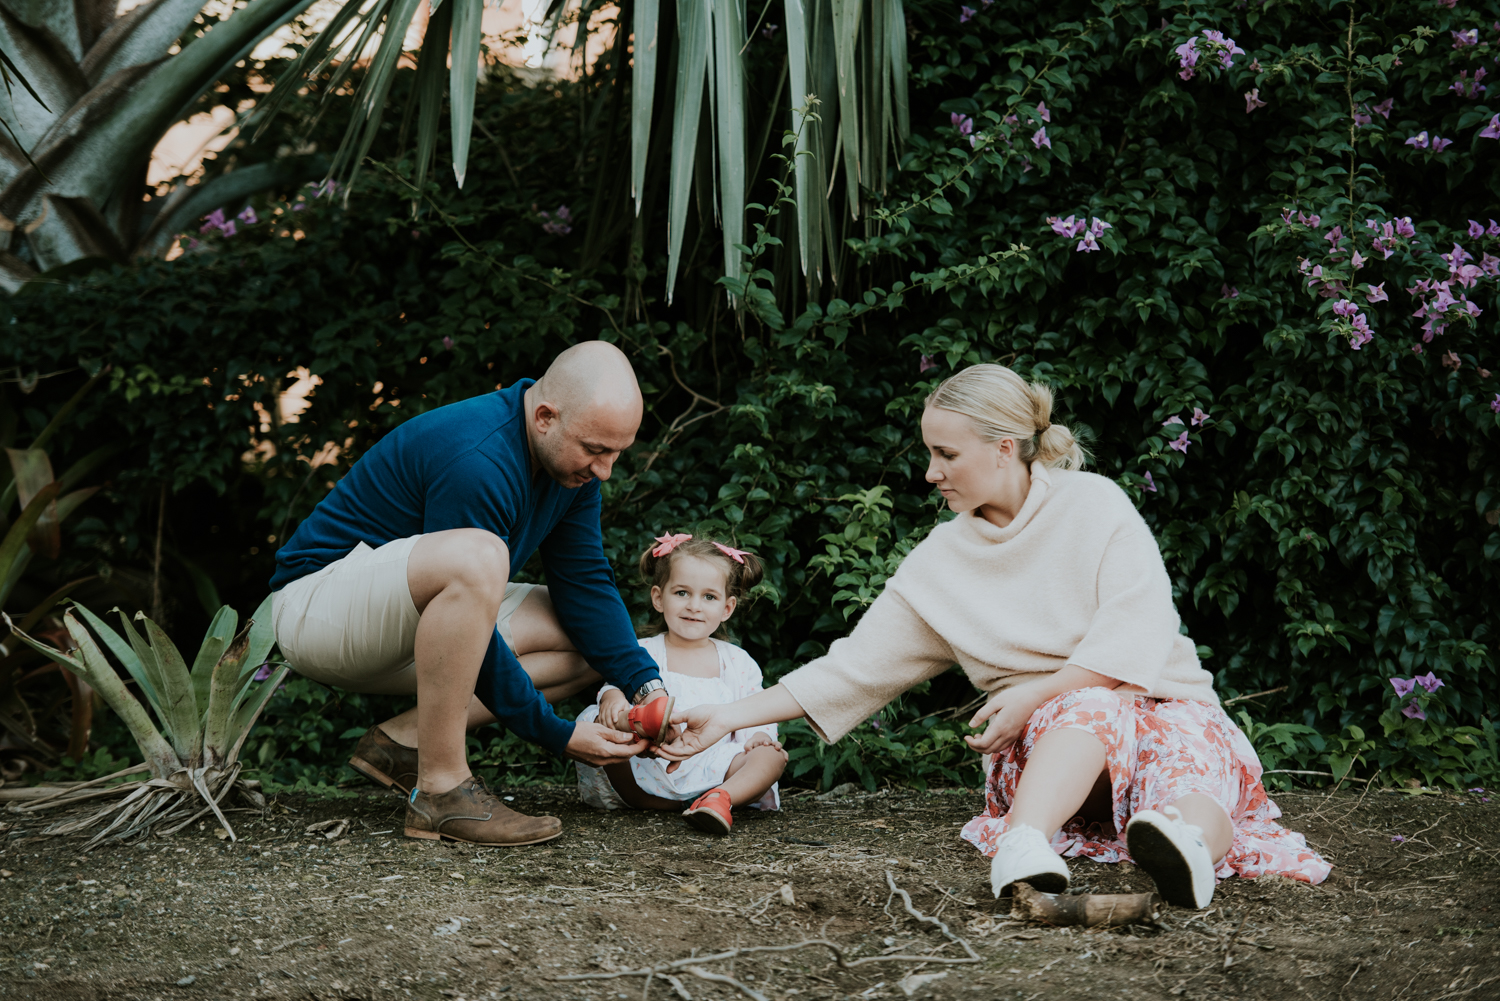 Brisbane Family Photographer | Newborn-Lifestyle Photography-13.jpg